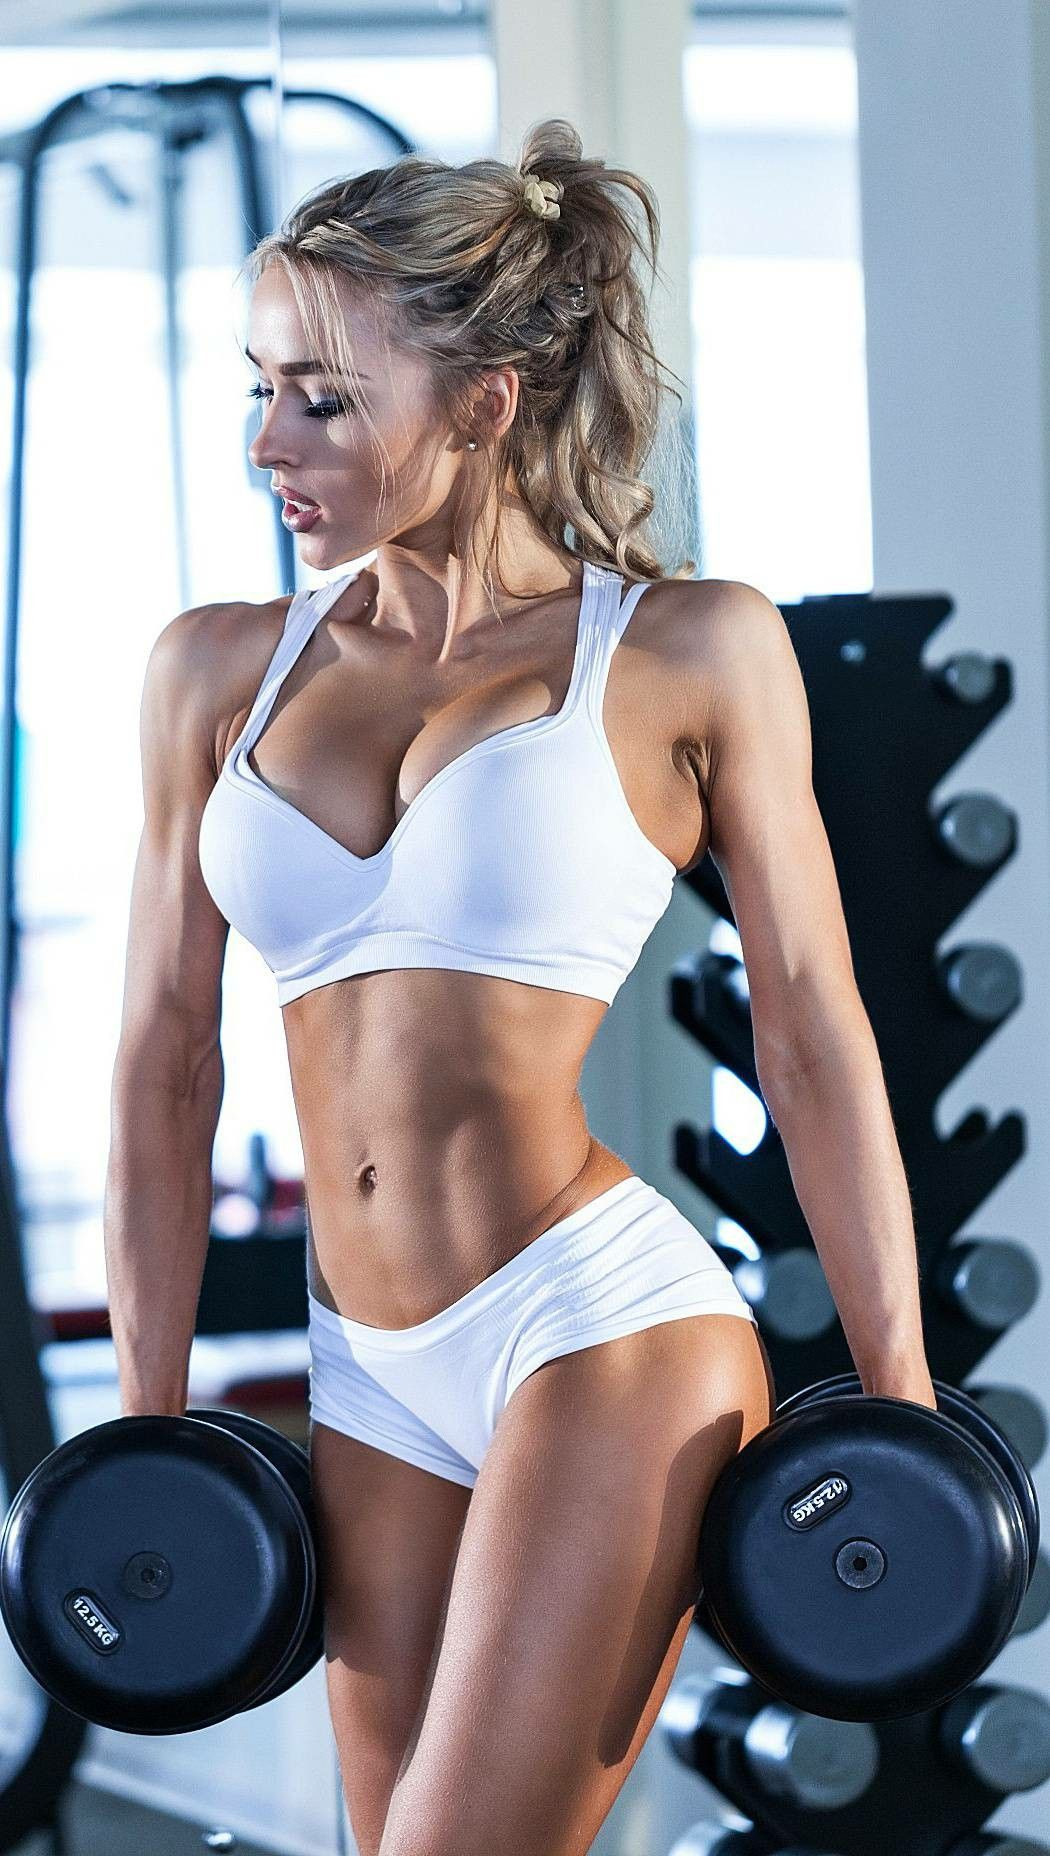 b955723028 Gym Workouts, Ladies Fitness, Gym Fitness, Fitness Goals, Health Fitness,  Fitness